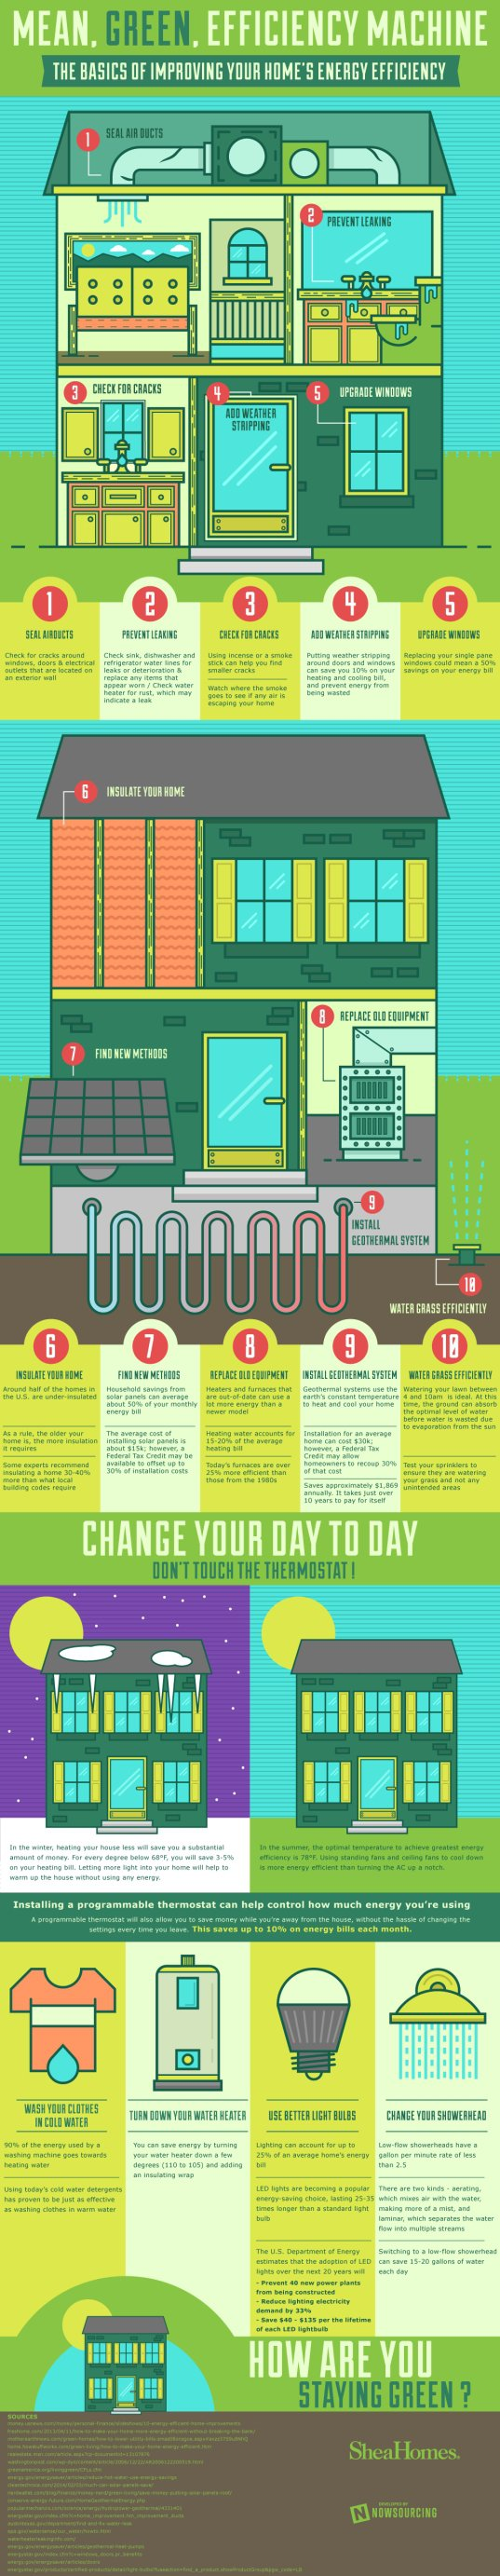 Become More Energy Efficient at Home